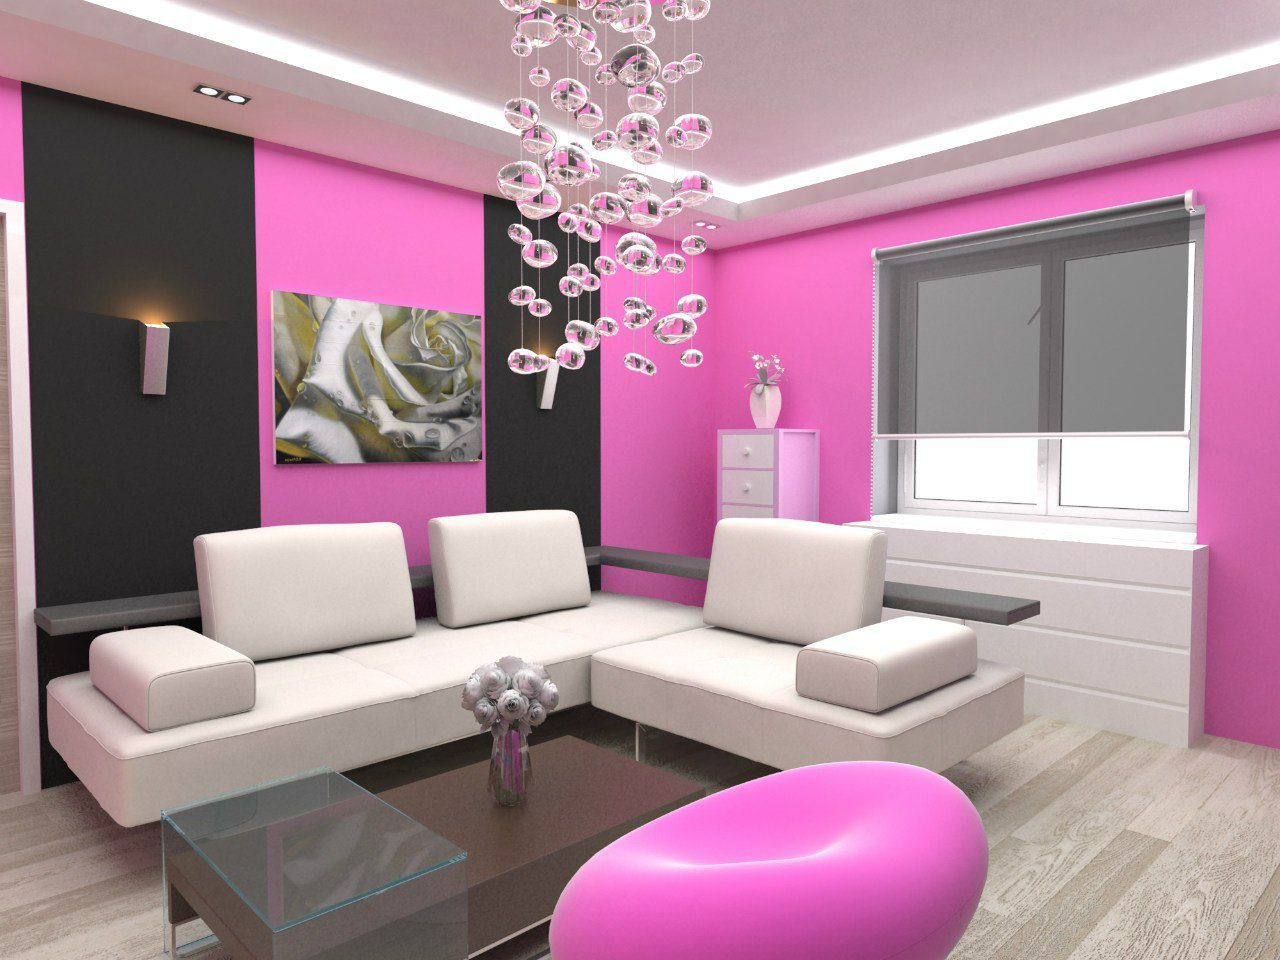 Bedroom wall painting ideas in pink color - Pink And Gray Room Ideas Pink Wall Paint For Living Room